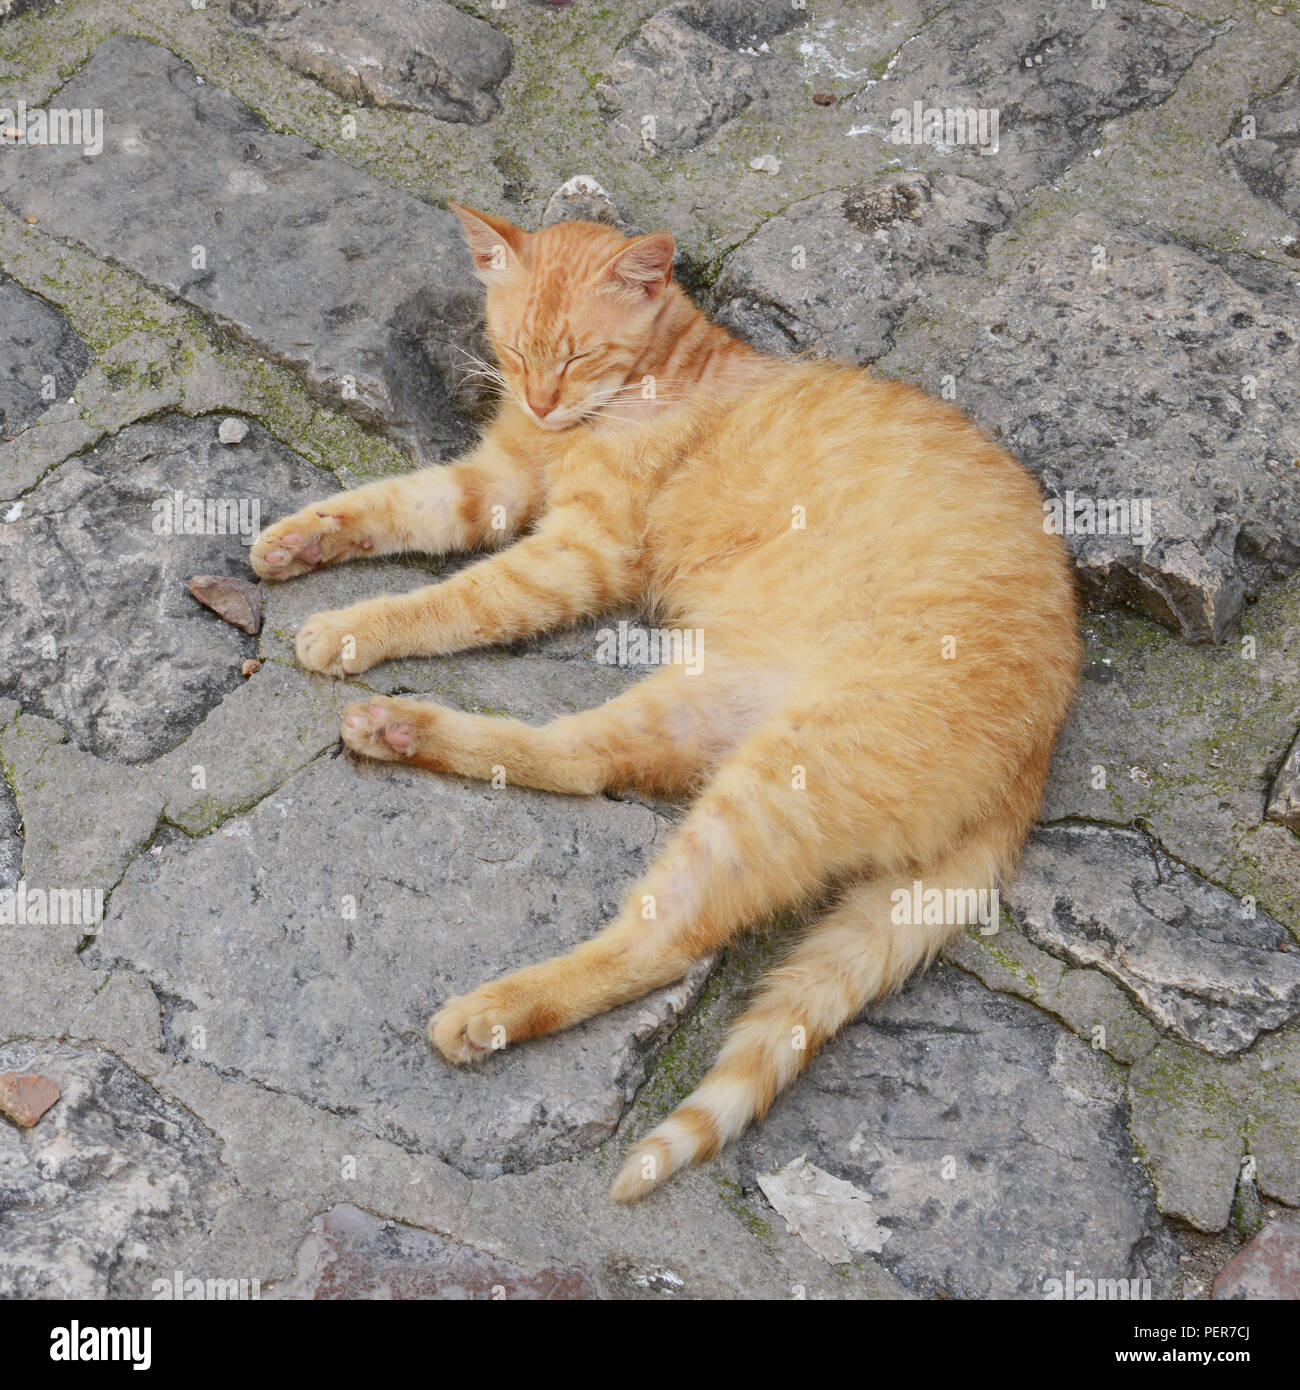 Contented cat in Kotor, Montenegro. The Old town is full of cats which are loved and respected (mostly) by the population. The cat has become the info. - Stock Image